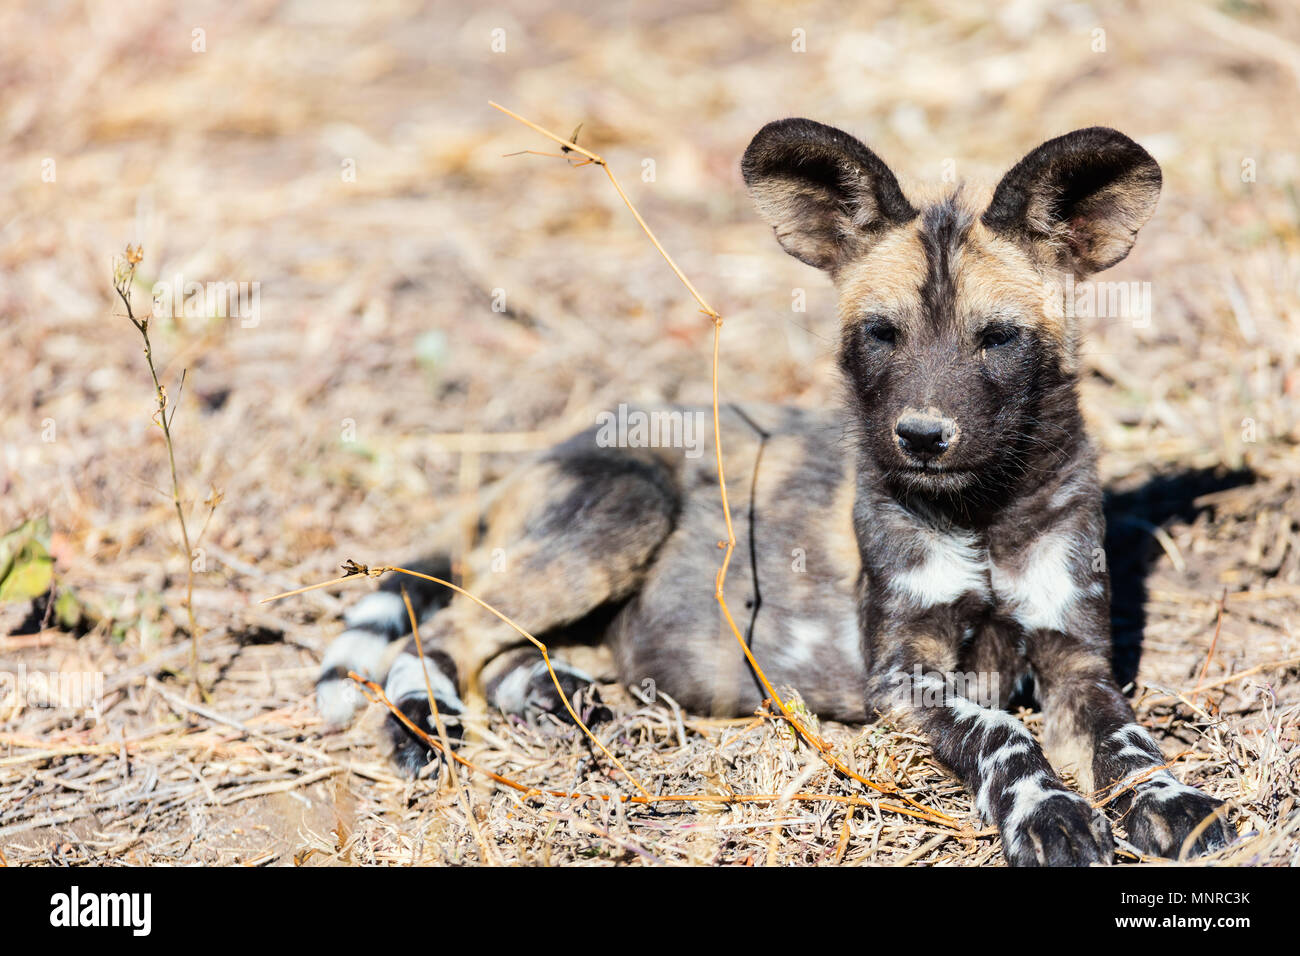 Endangered animal African wild dog puppy in safari park in South Africa - Stock Image